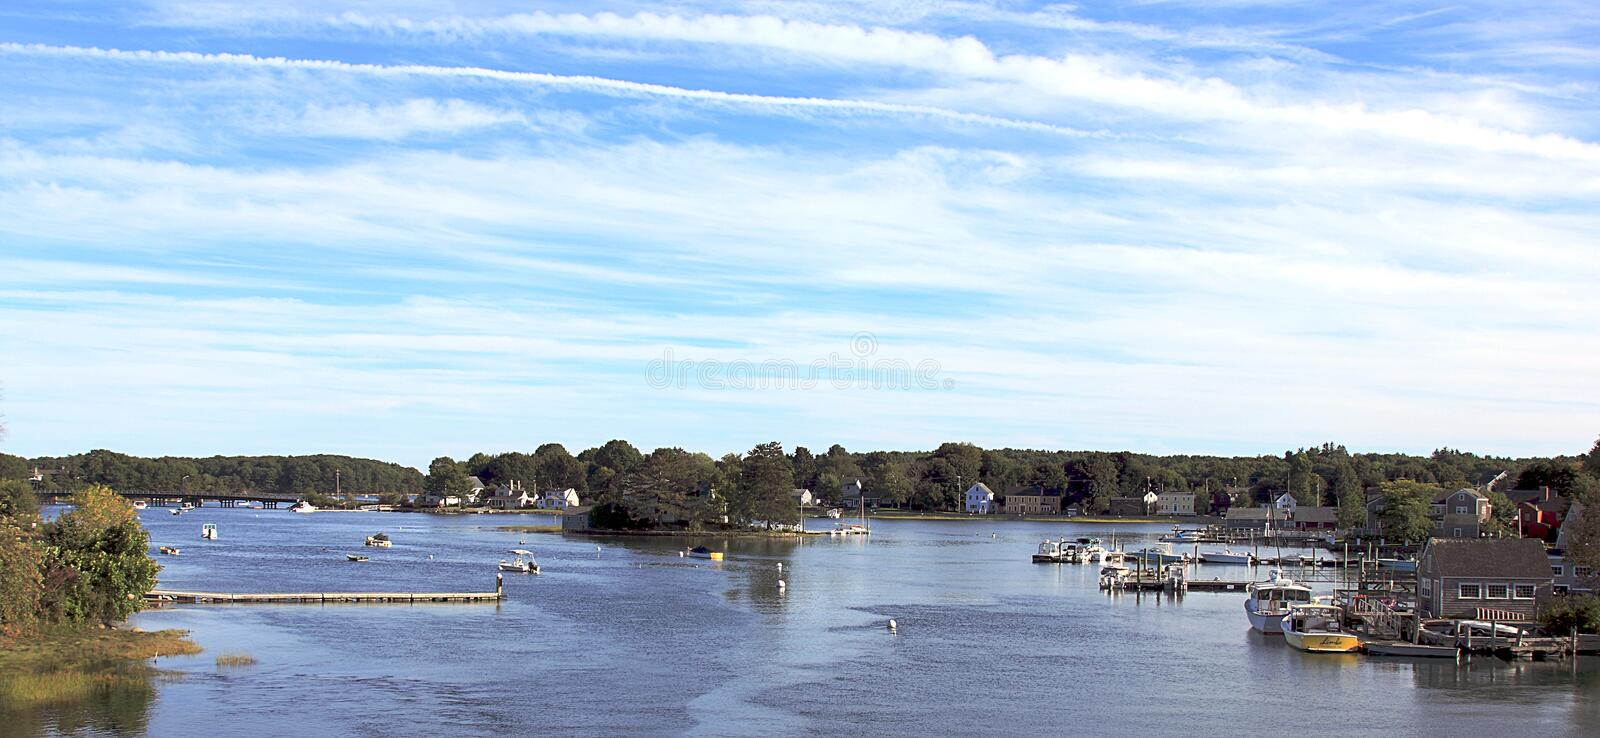 Natural riverside scenery with a small harbor near Portland, Maine. Natural riverside scenery including a small harbor near Portland, Maine royalty free stock photography